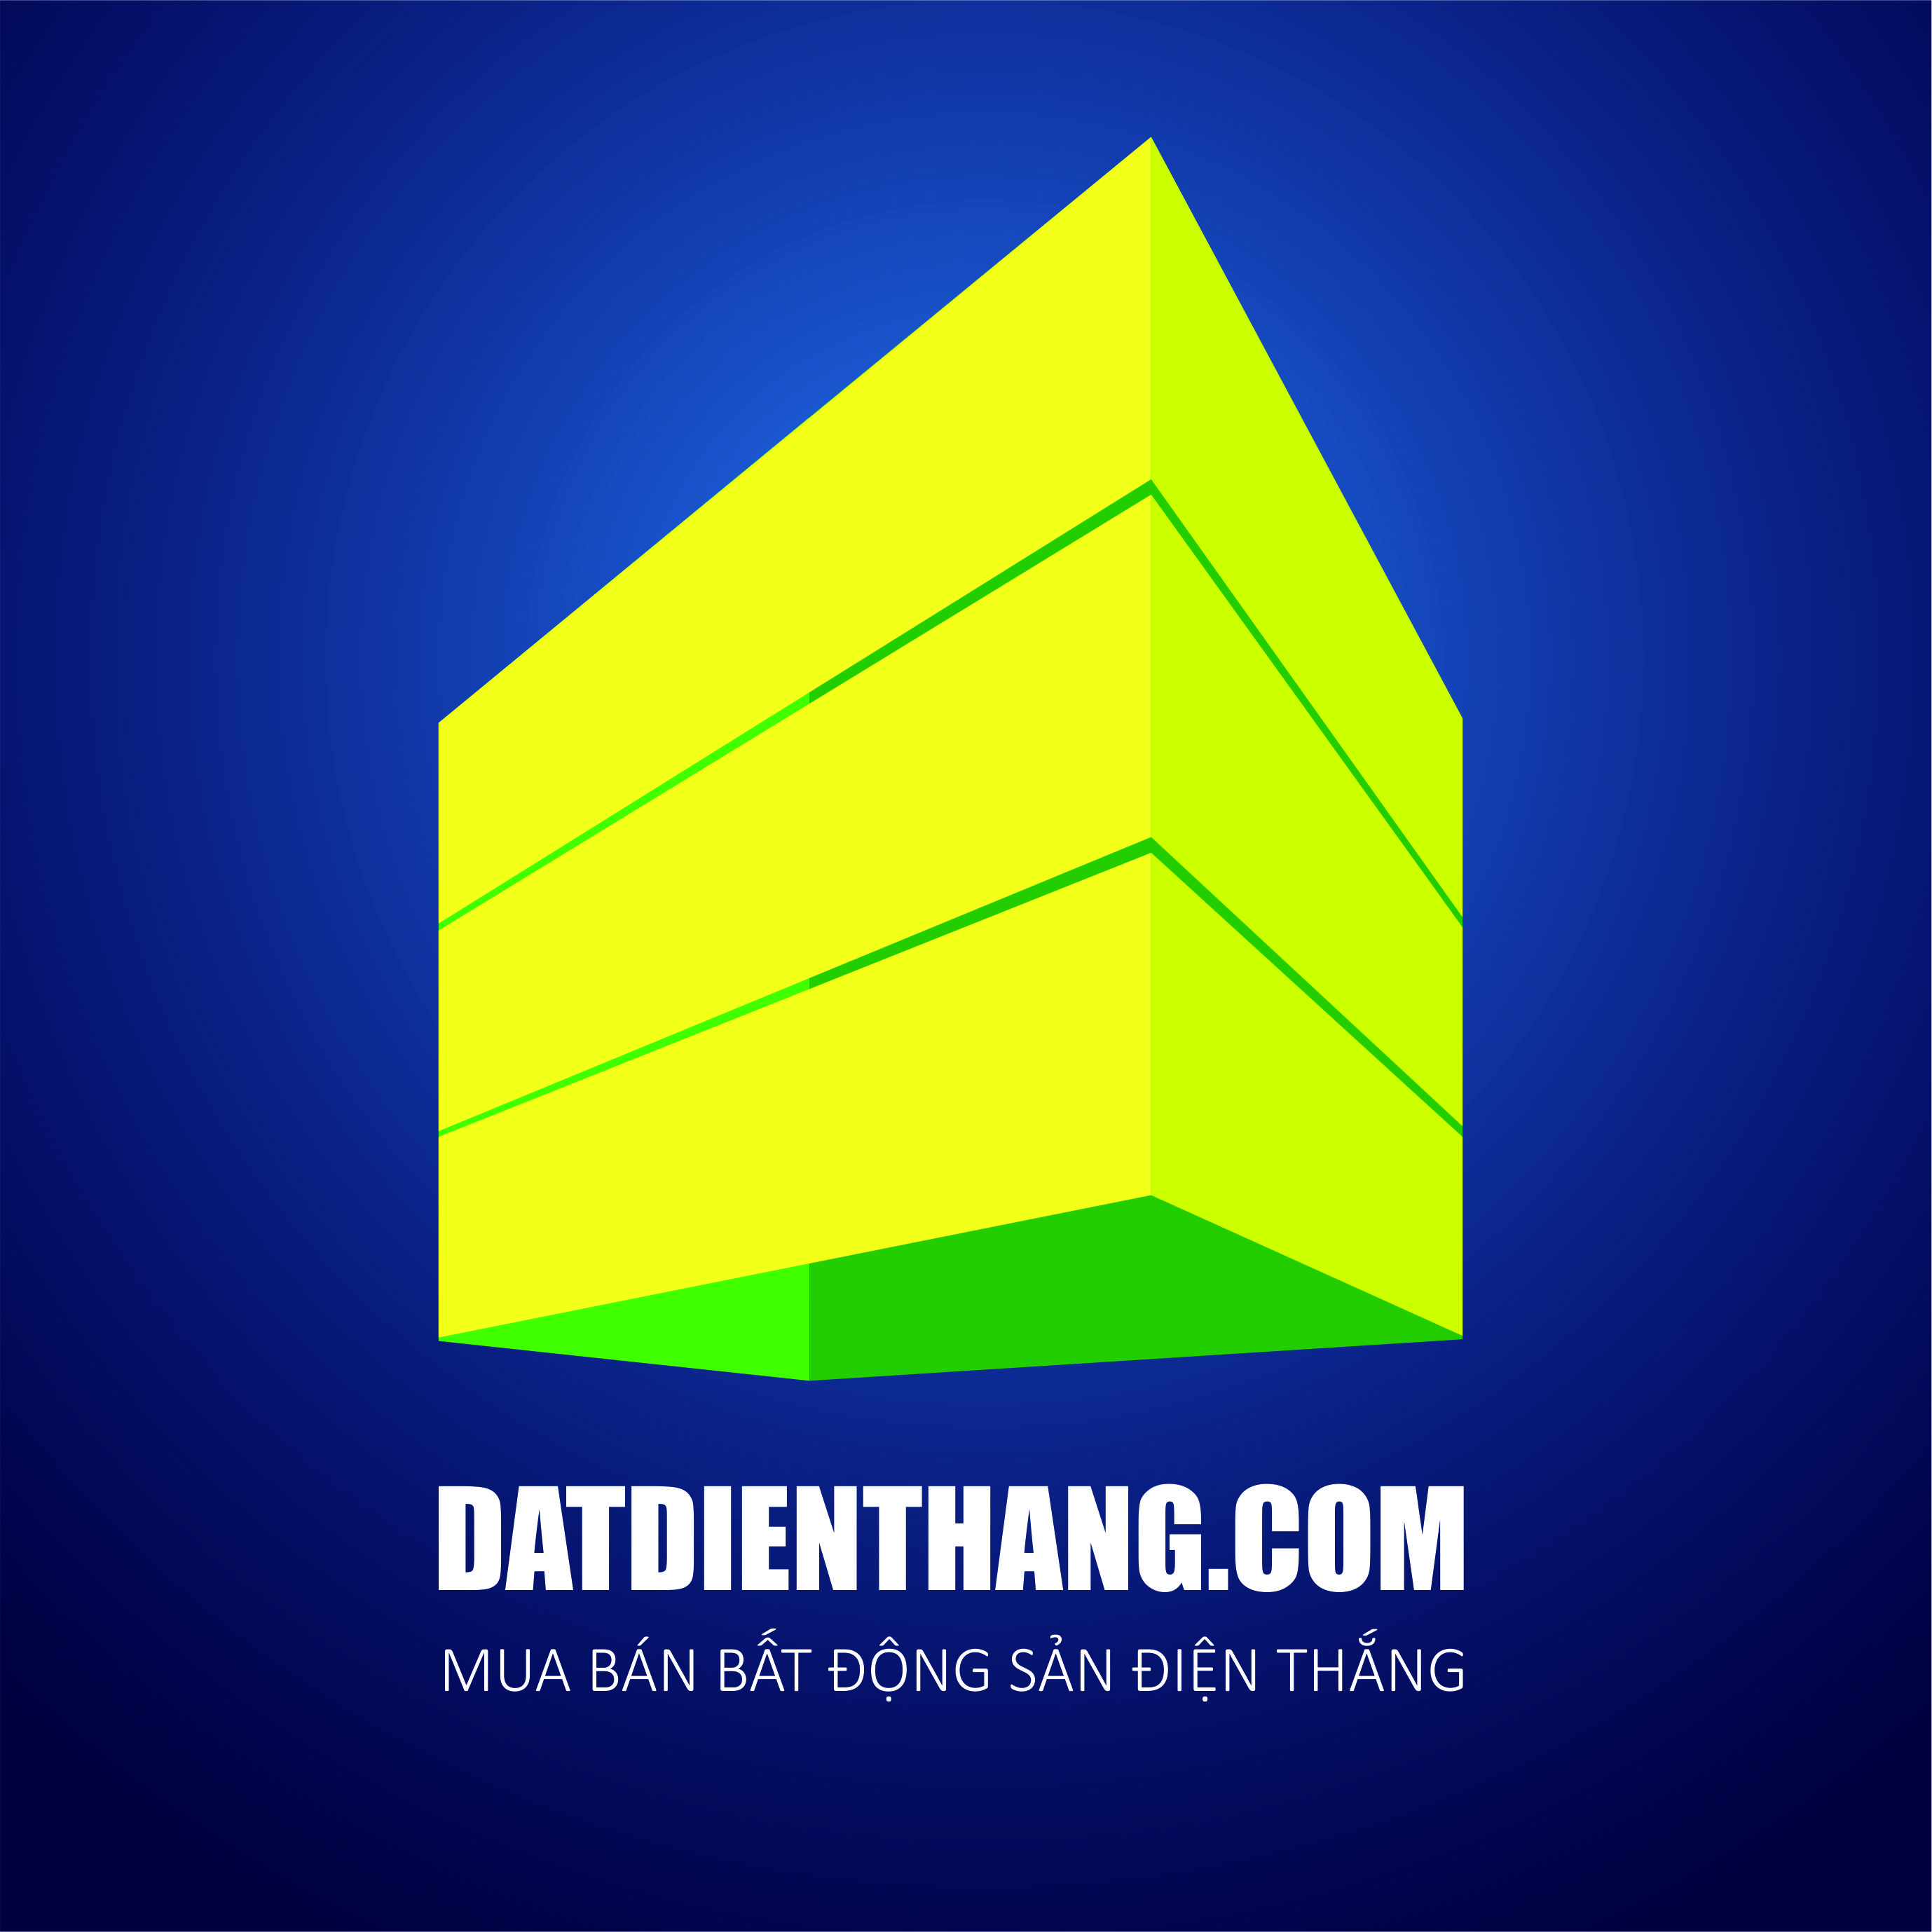 datdienthang new